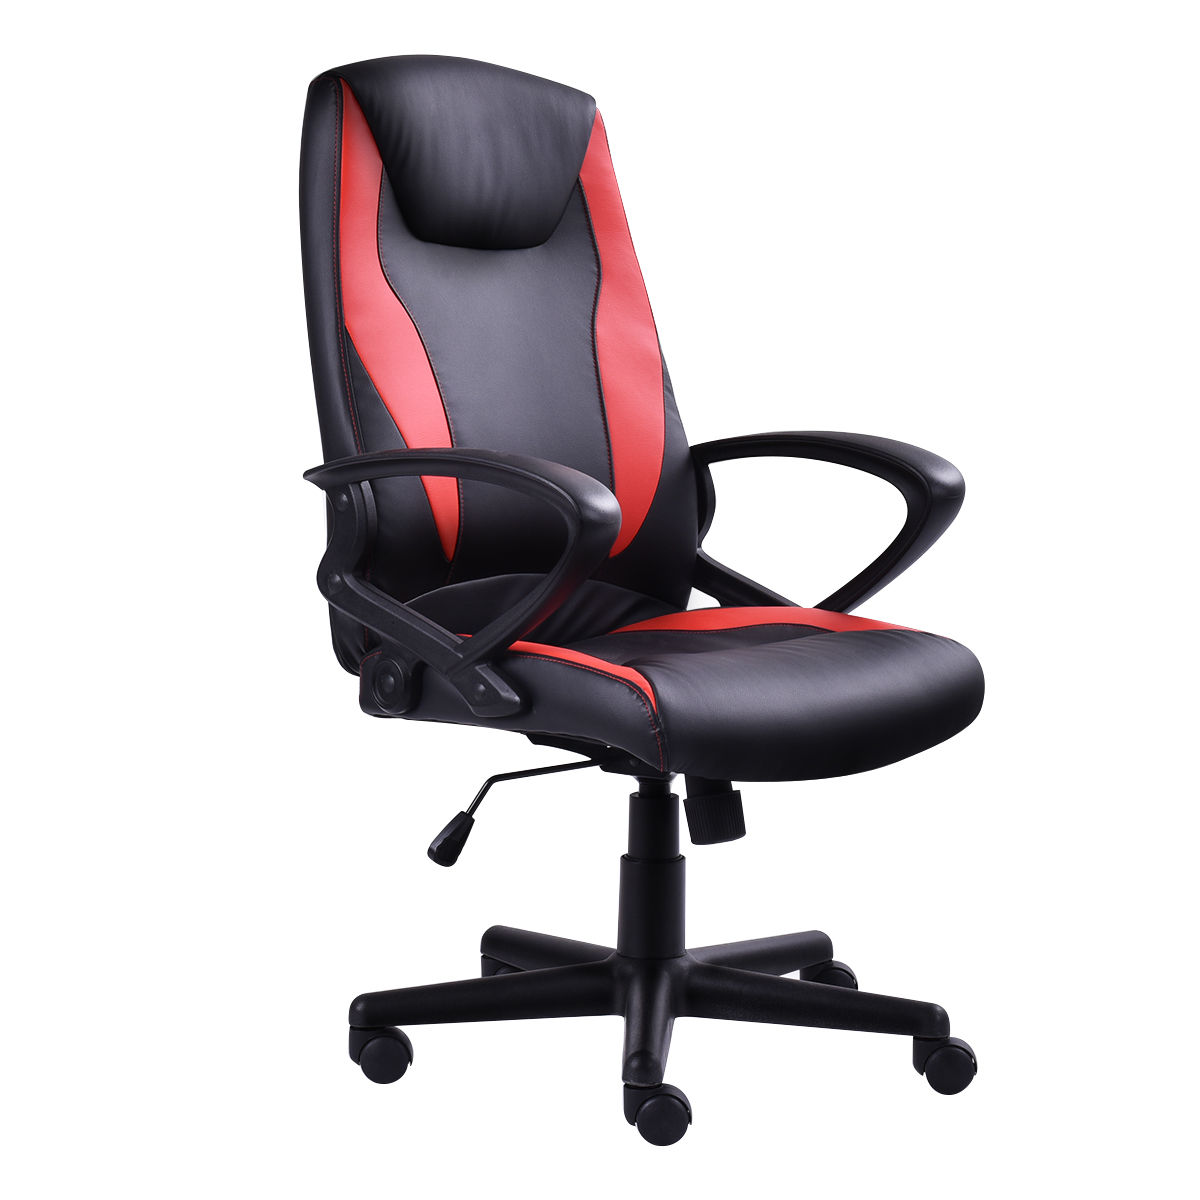 Gymax Racing Style High Back Office Chair PU Leather